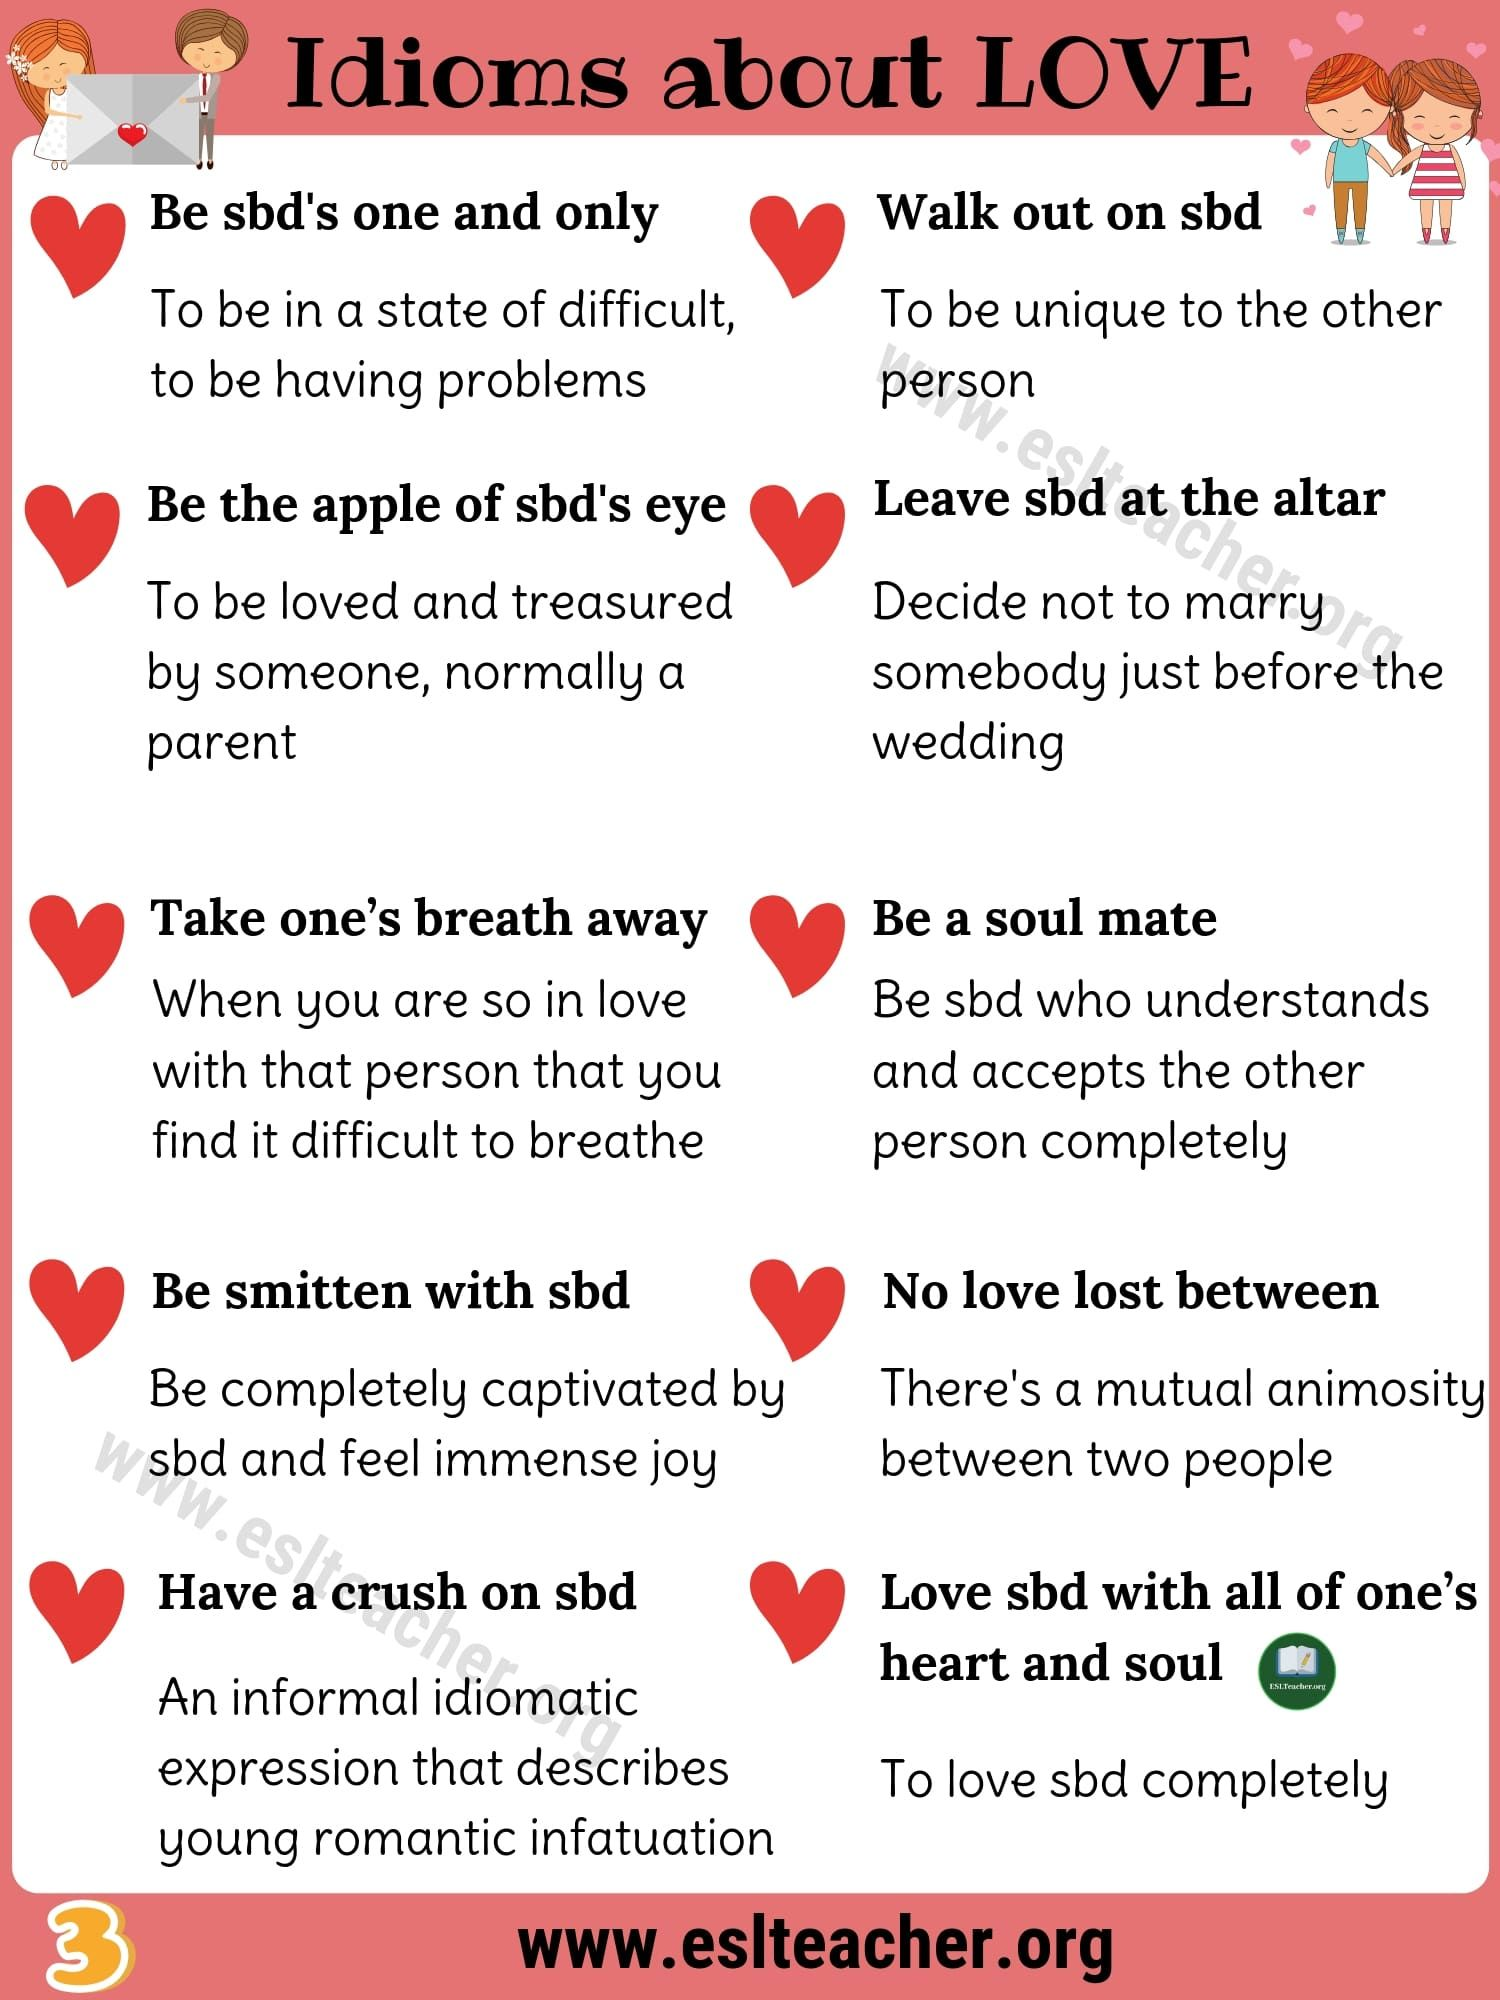 Love Idioms 32 Fantastic Idioms About Love In English